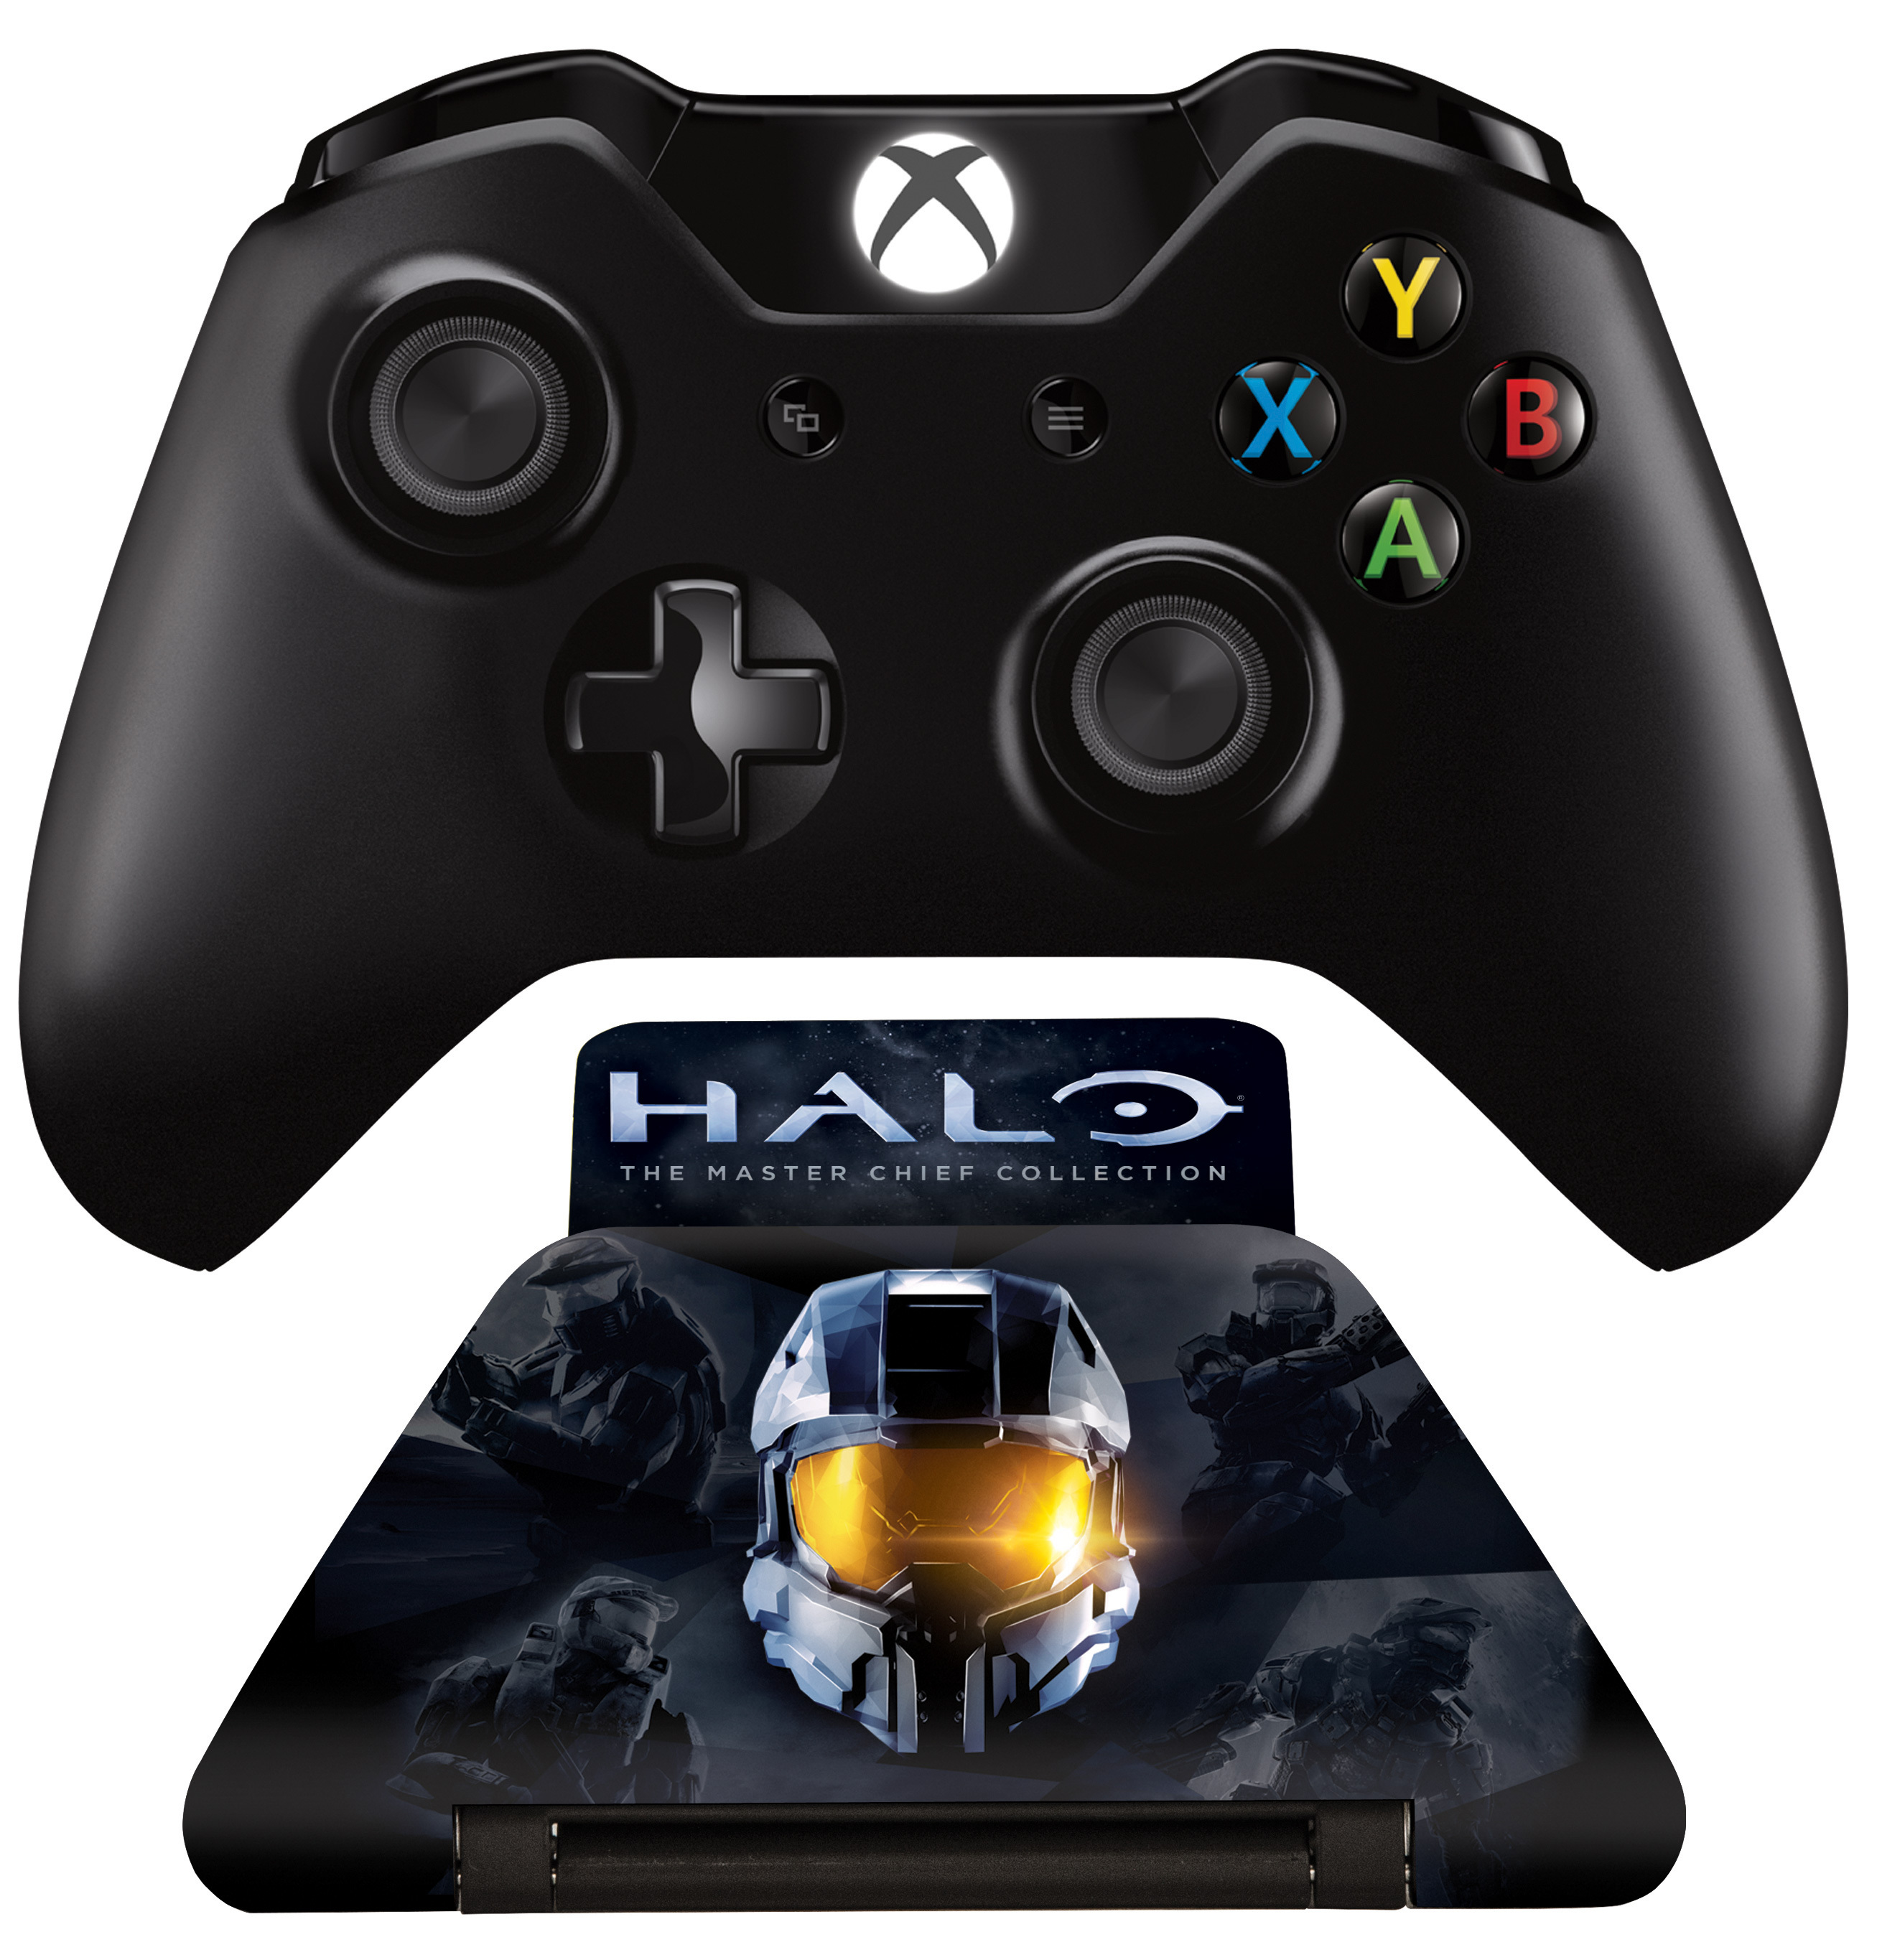 Controller Gear Inc Bringing Xbox And Halo Licensed